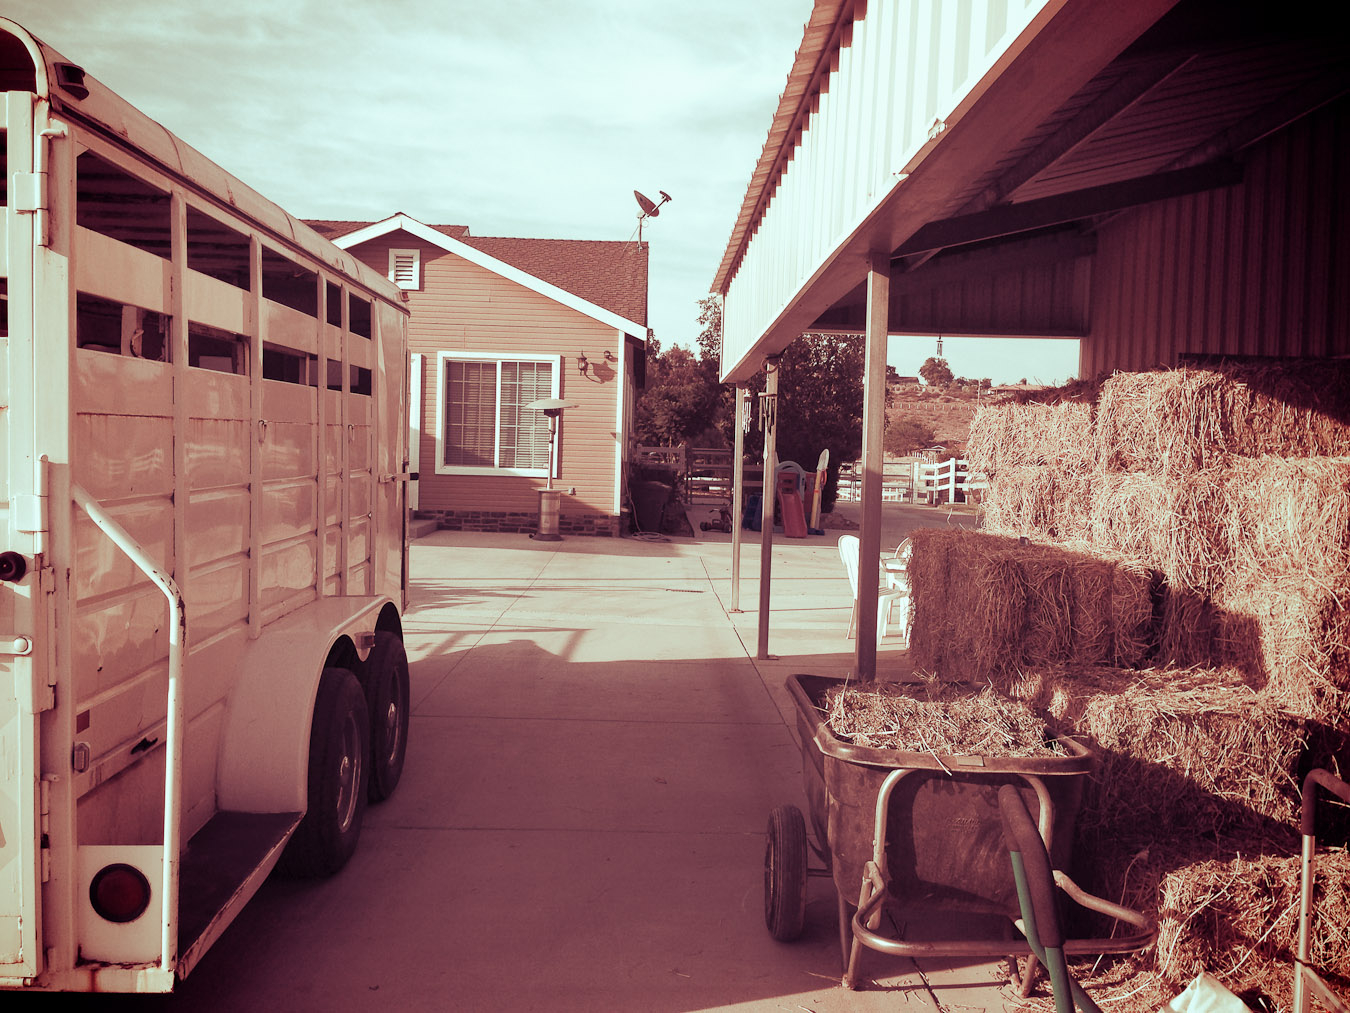 Trailer and Hay